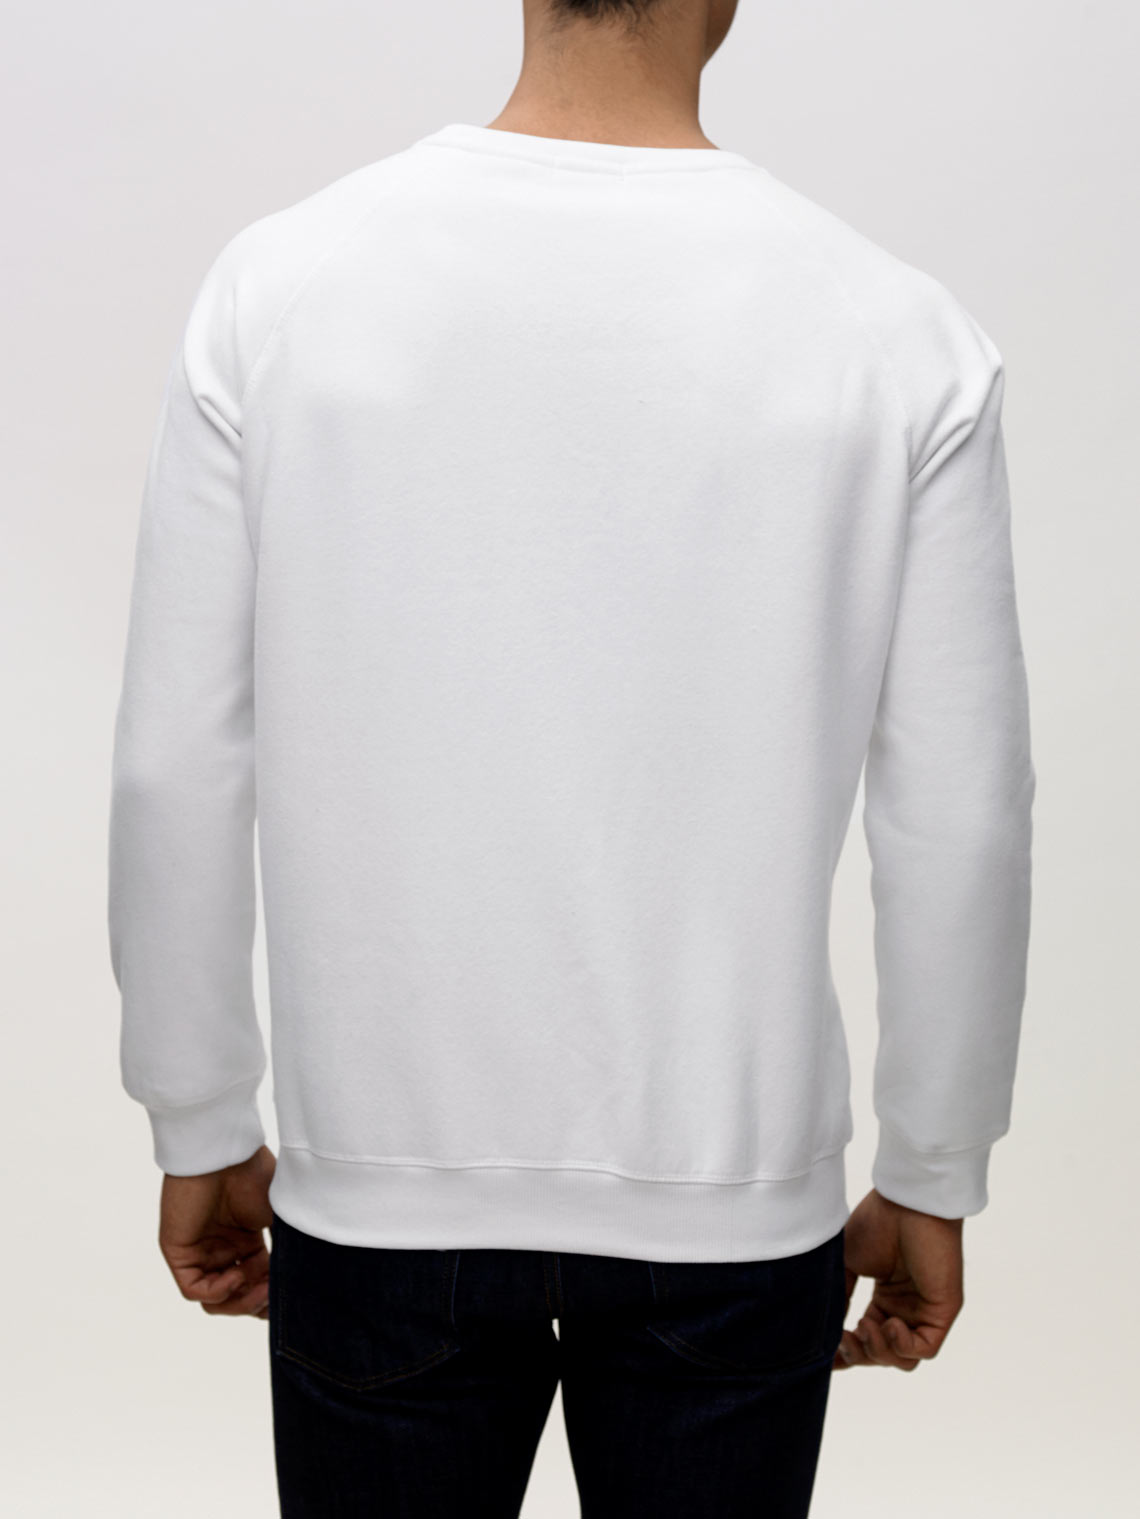 Product Shot of the The Sweatshirt in White